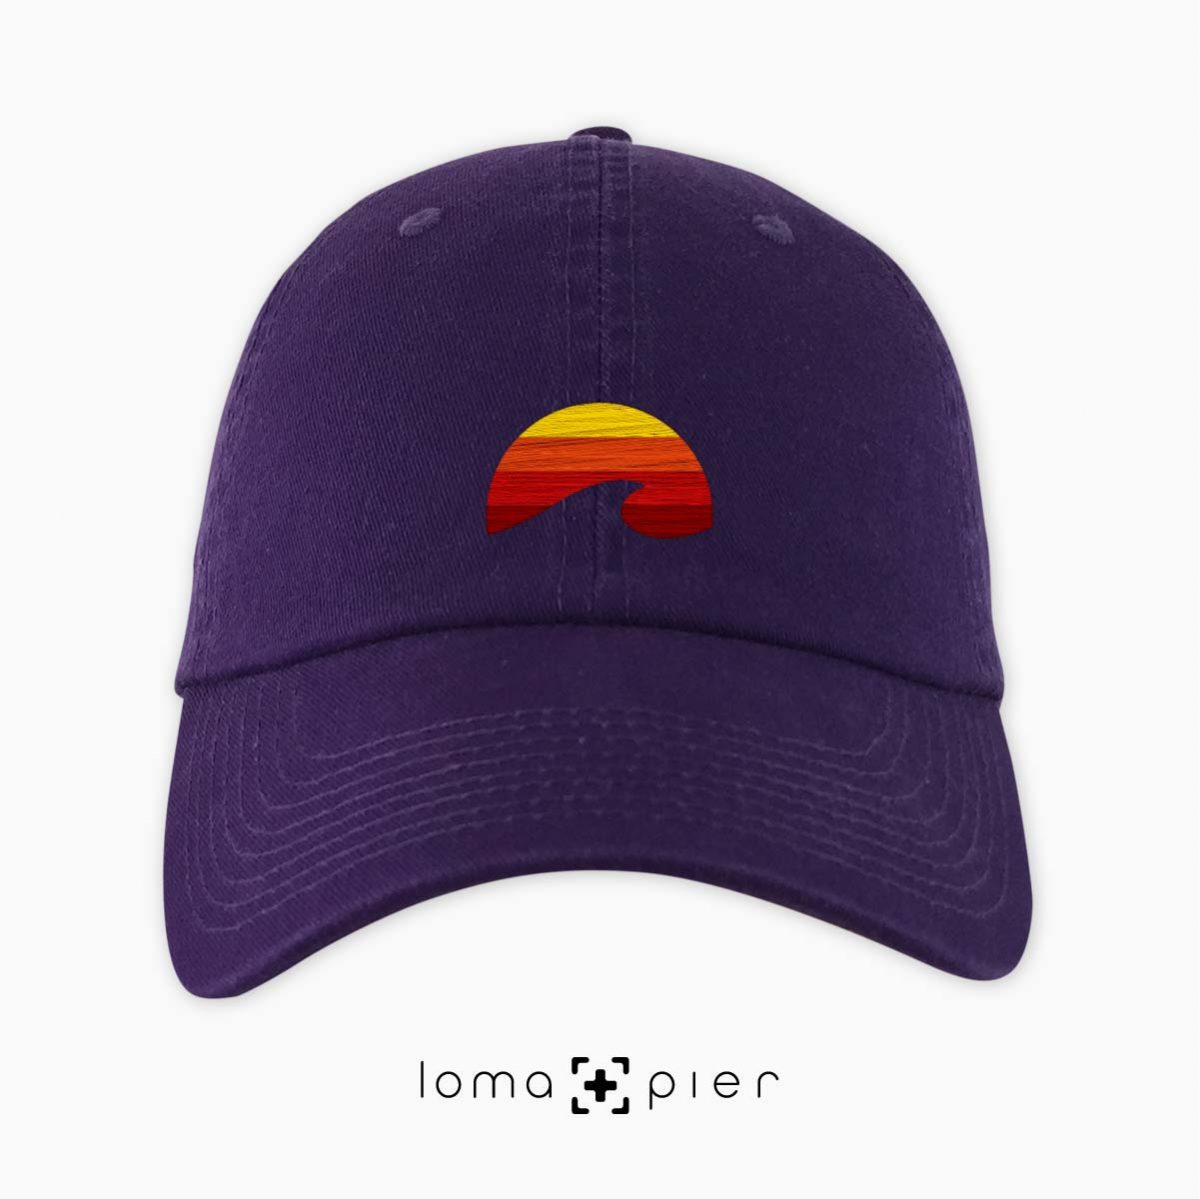 PACIFIC SUN icon embroidered on a purple dad hat by loma+pier hat store made in the USA